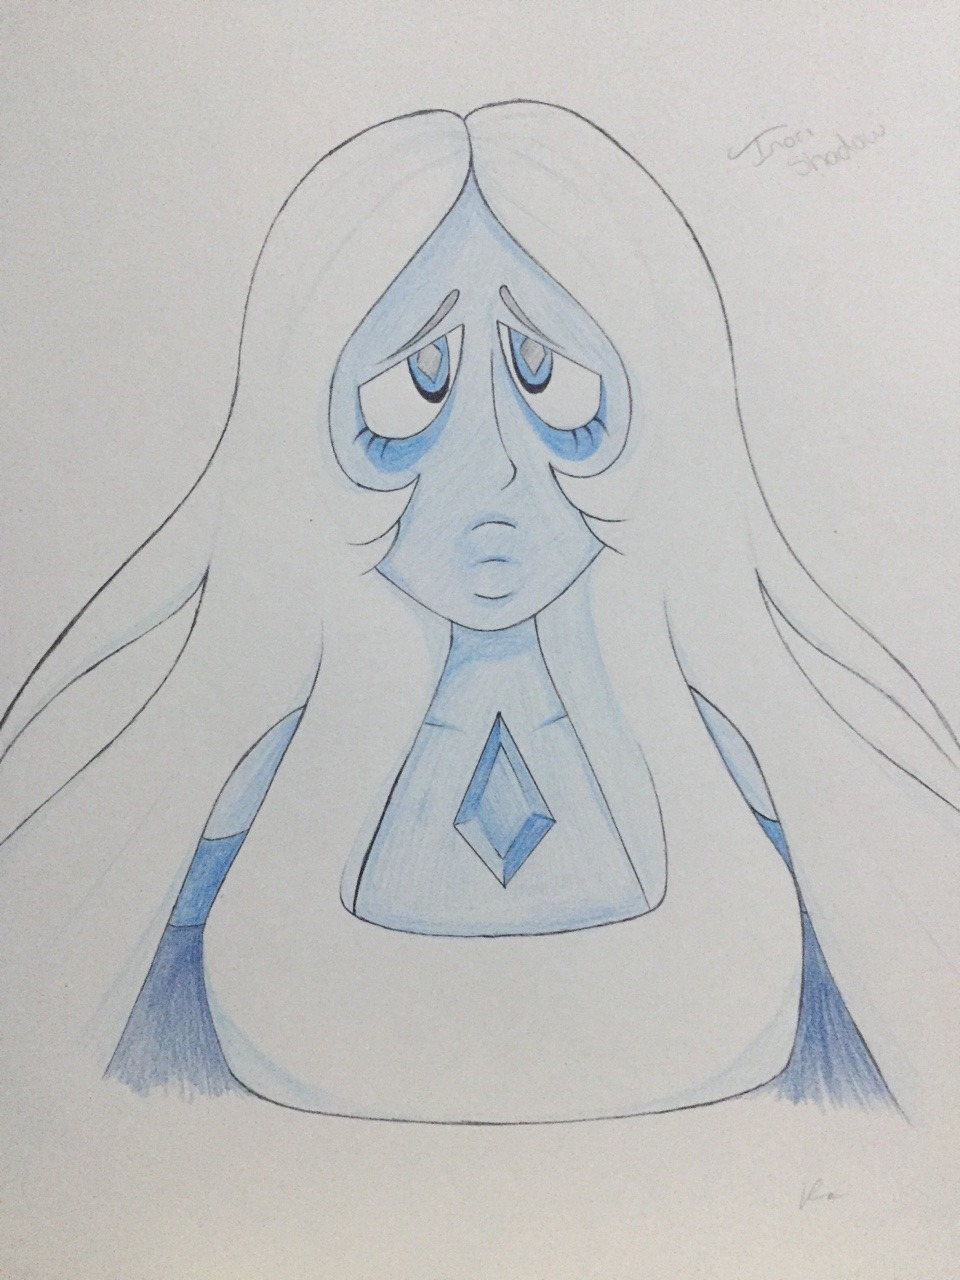 Brother got me a big ol sketchy book for Christmas and thought I'd draw my favourite diamond to start it off :)